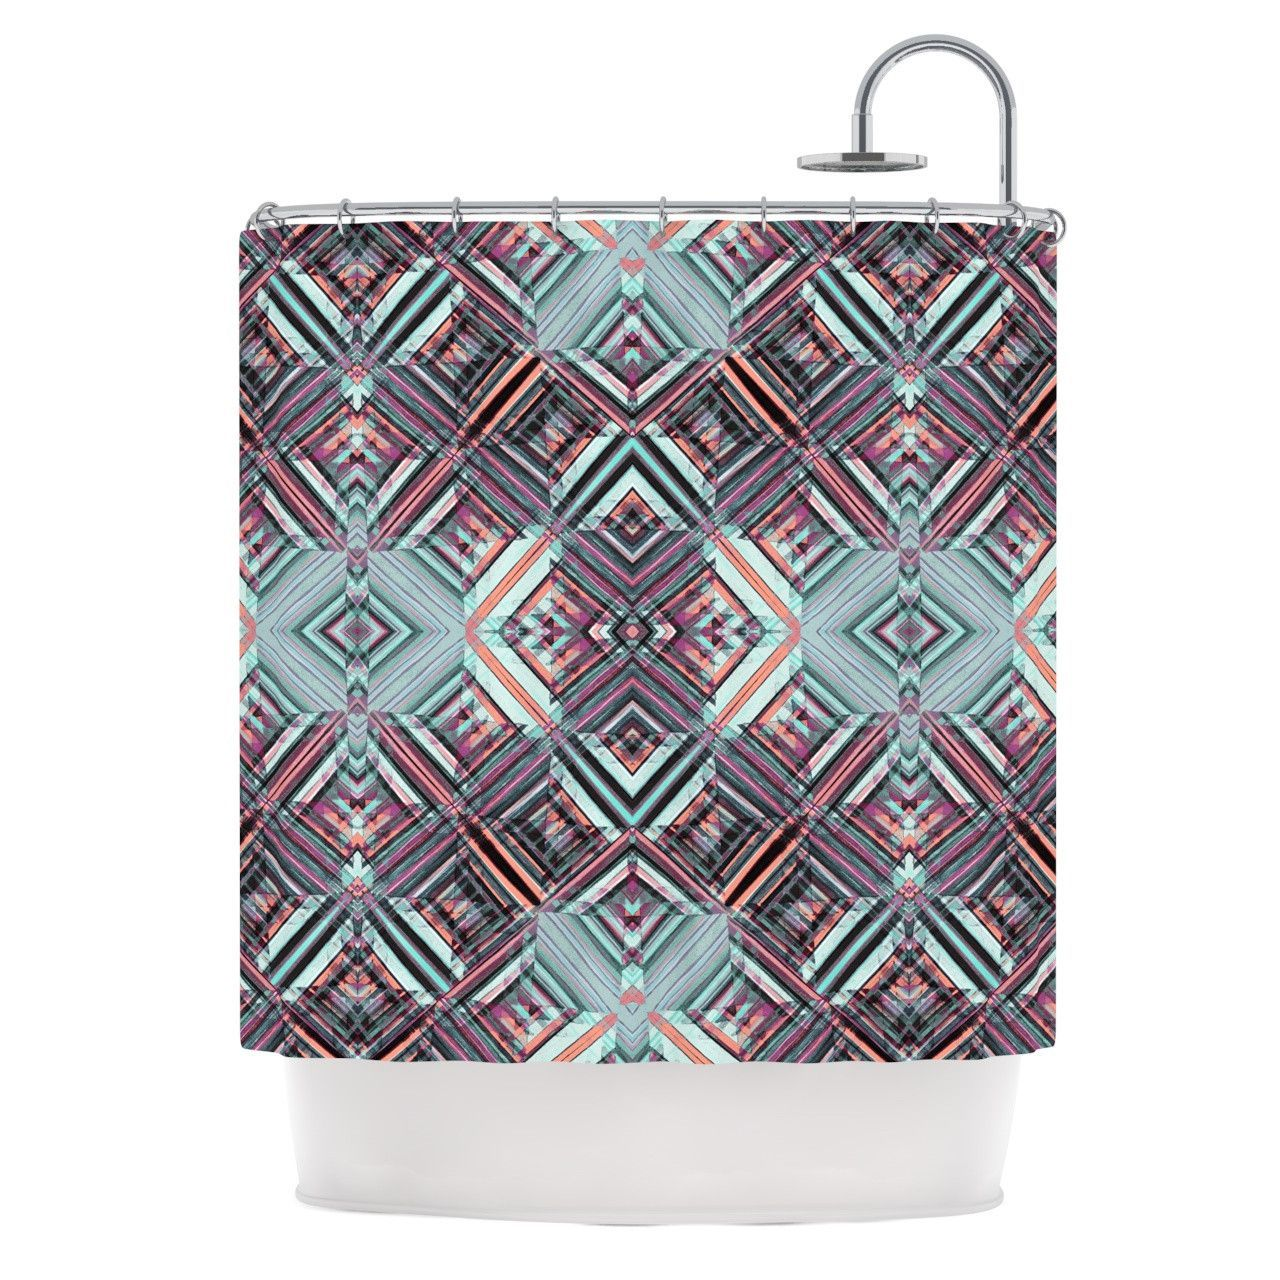 Deco Salle De Bain Fille ~ Gabriela Fuente Watercolor Caledoscope Purple Teal Shower Curtain